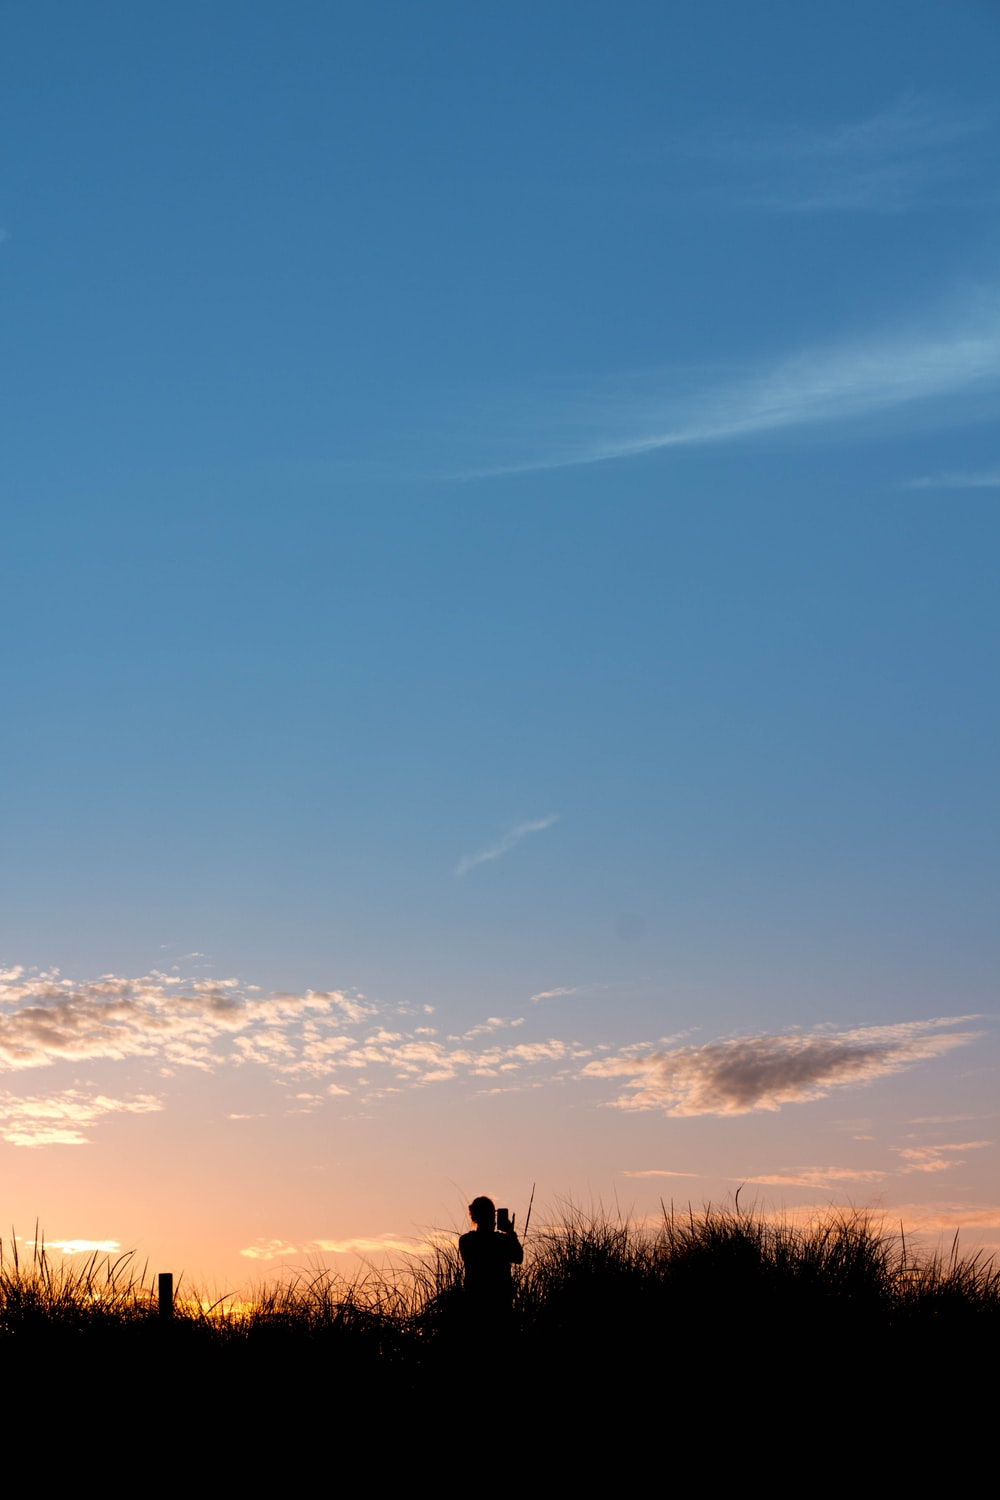 silhouette of person standing on grass field during sunset